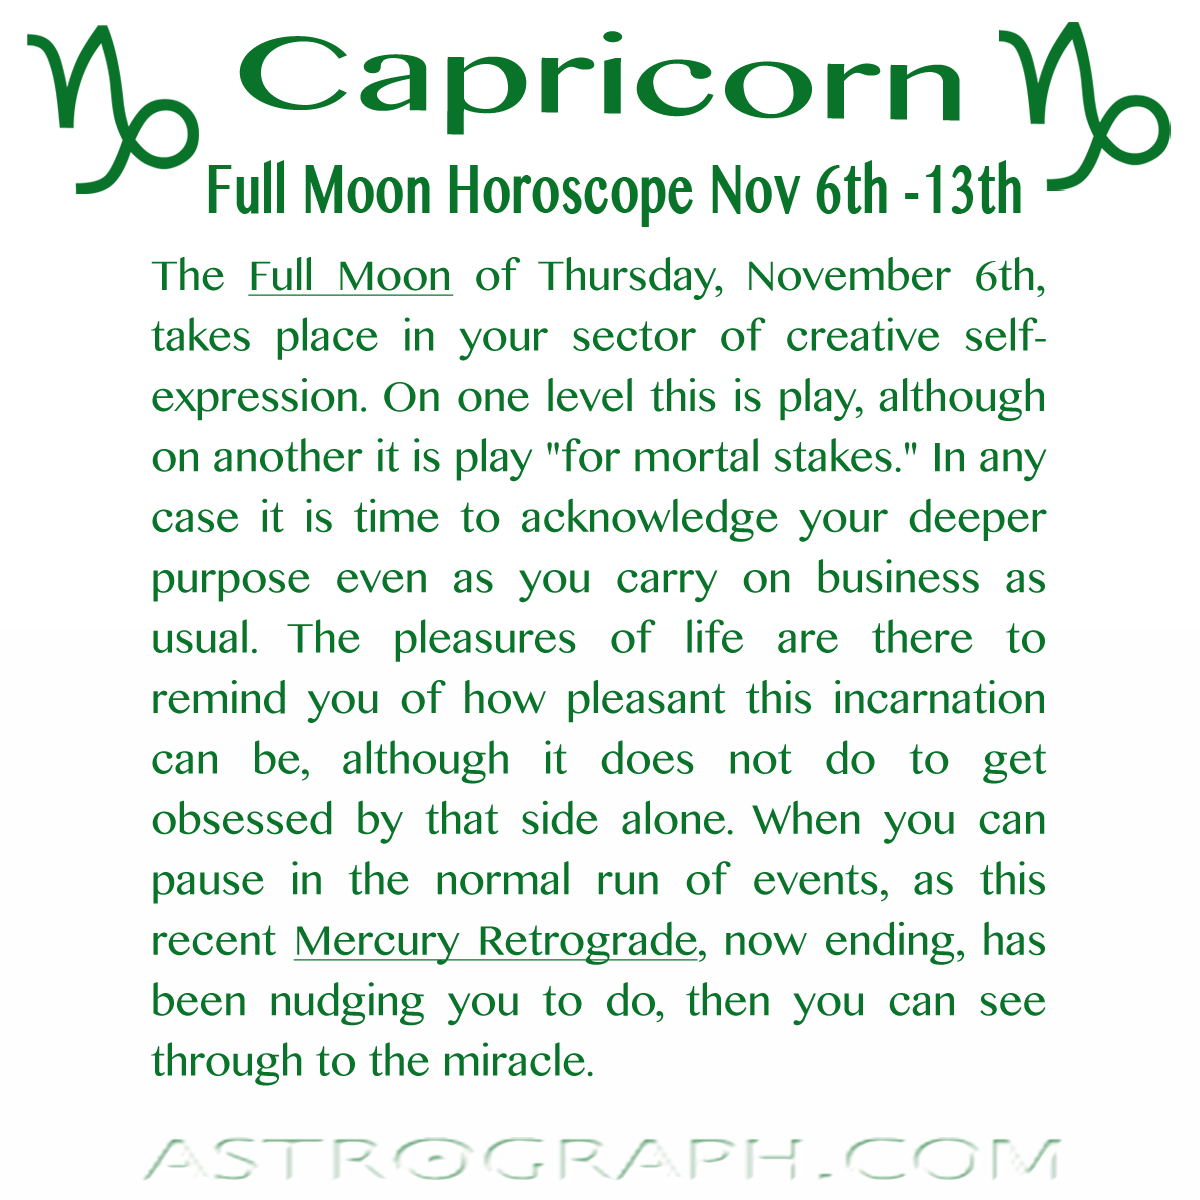 #Capricorn! The #FullMoon is today... Click the image to read your #horoscope. For more visit: https://www.astrograph.com/horoscopes/capricorn/2014/November